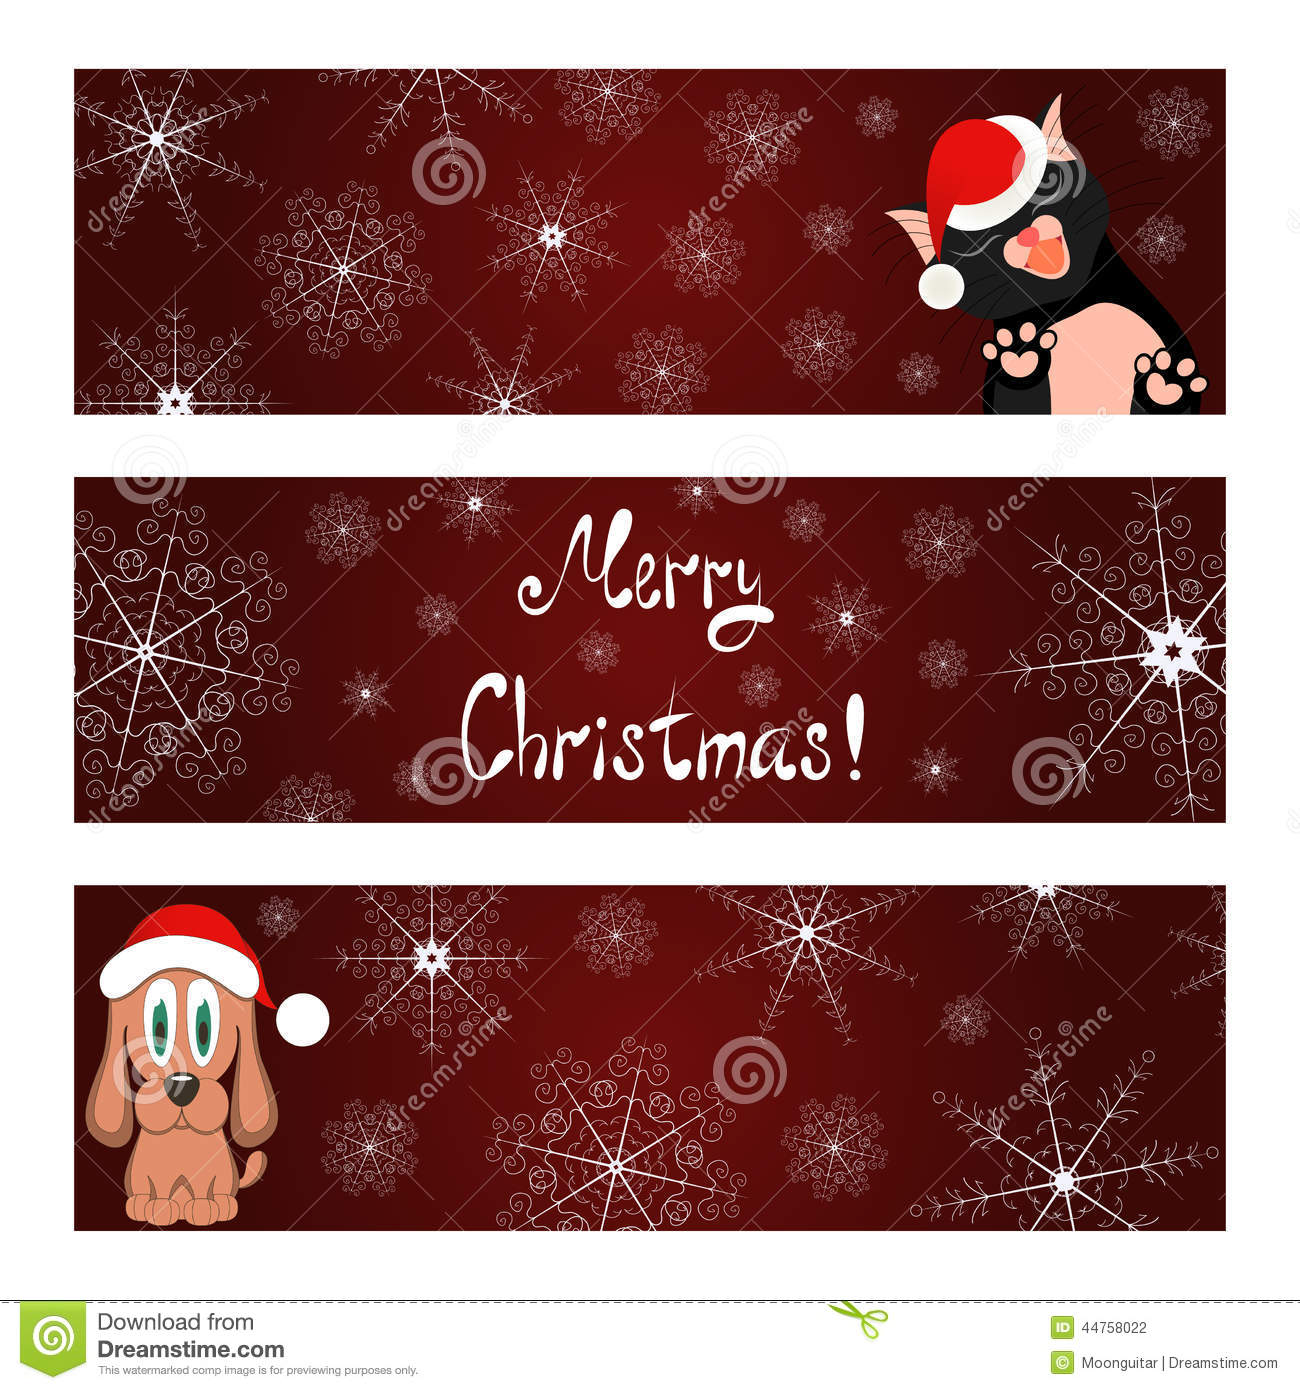 Christmas traditions in the united states clipart clip art royalty free stock Christmas traditions in the united states clipart - ClipartFest clip art royalty free stock